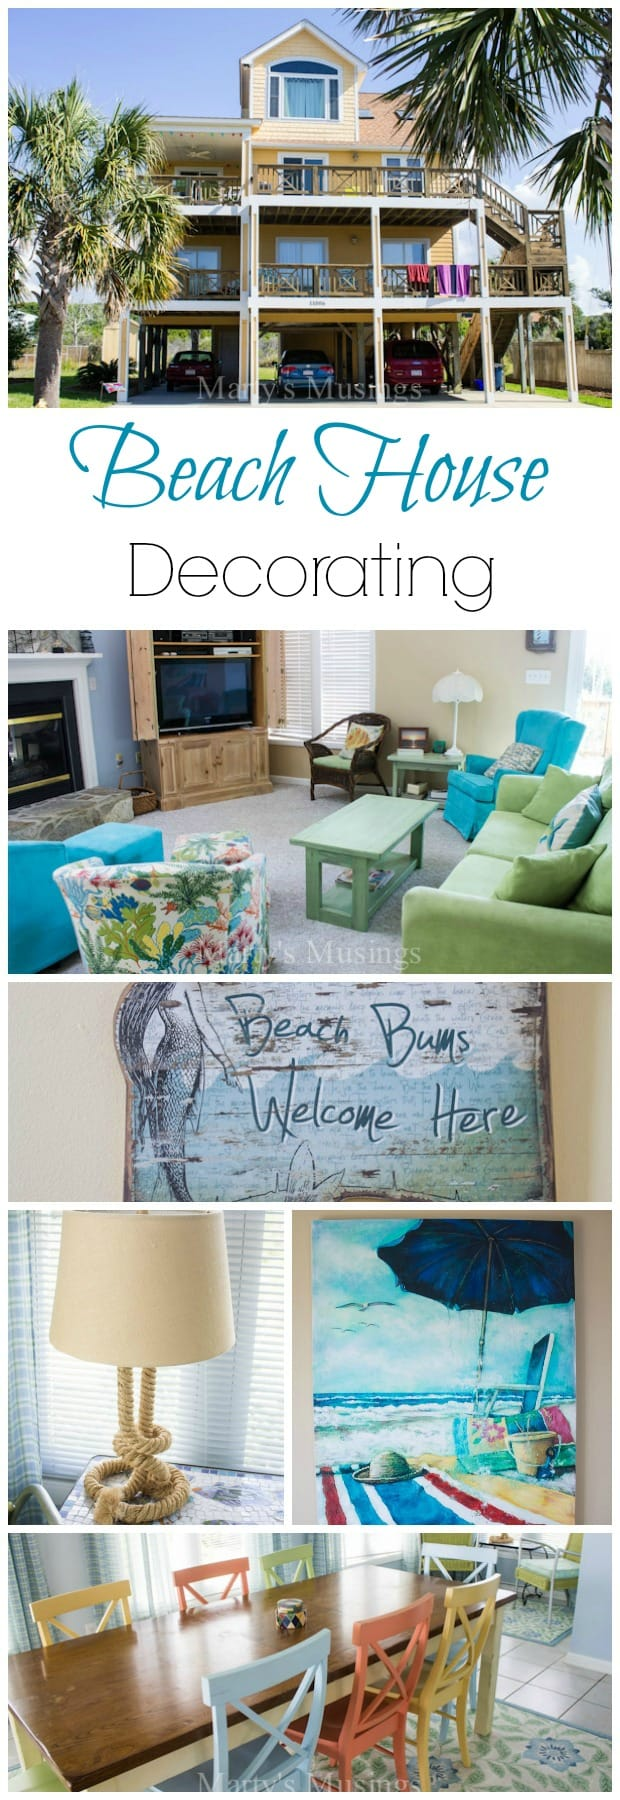 beach house decorating ideas related keywords